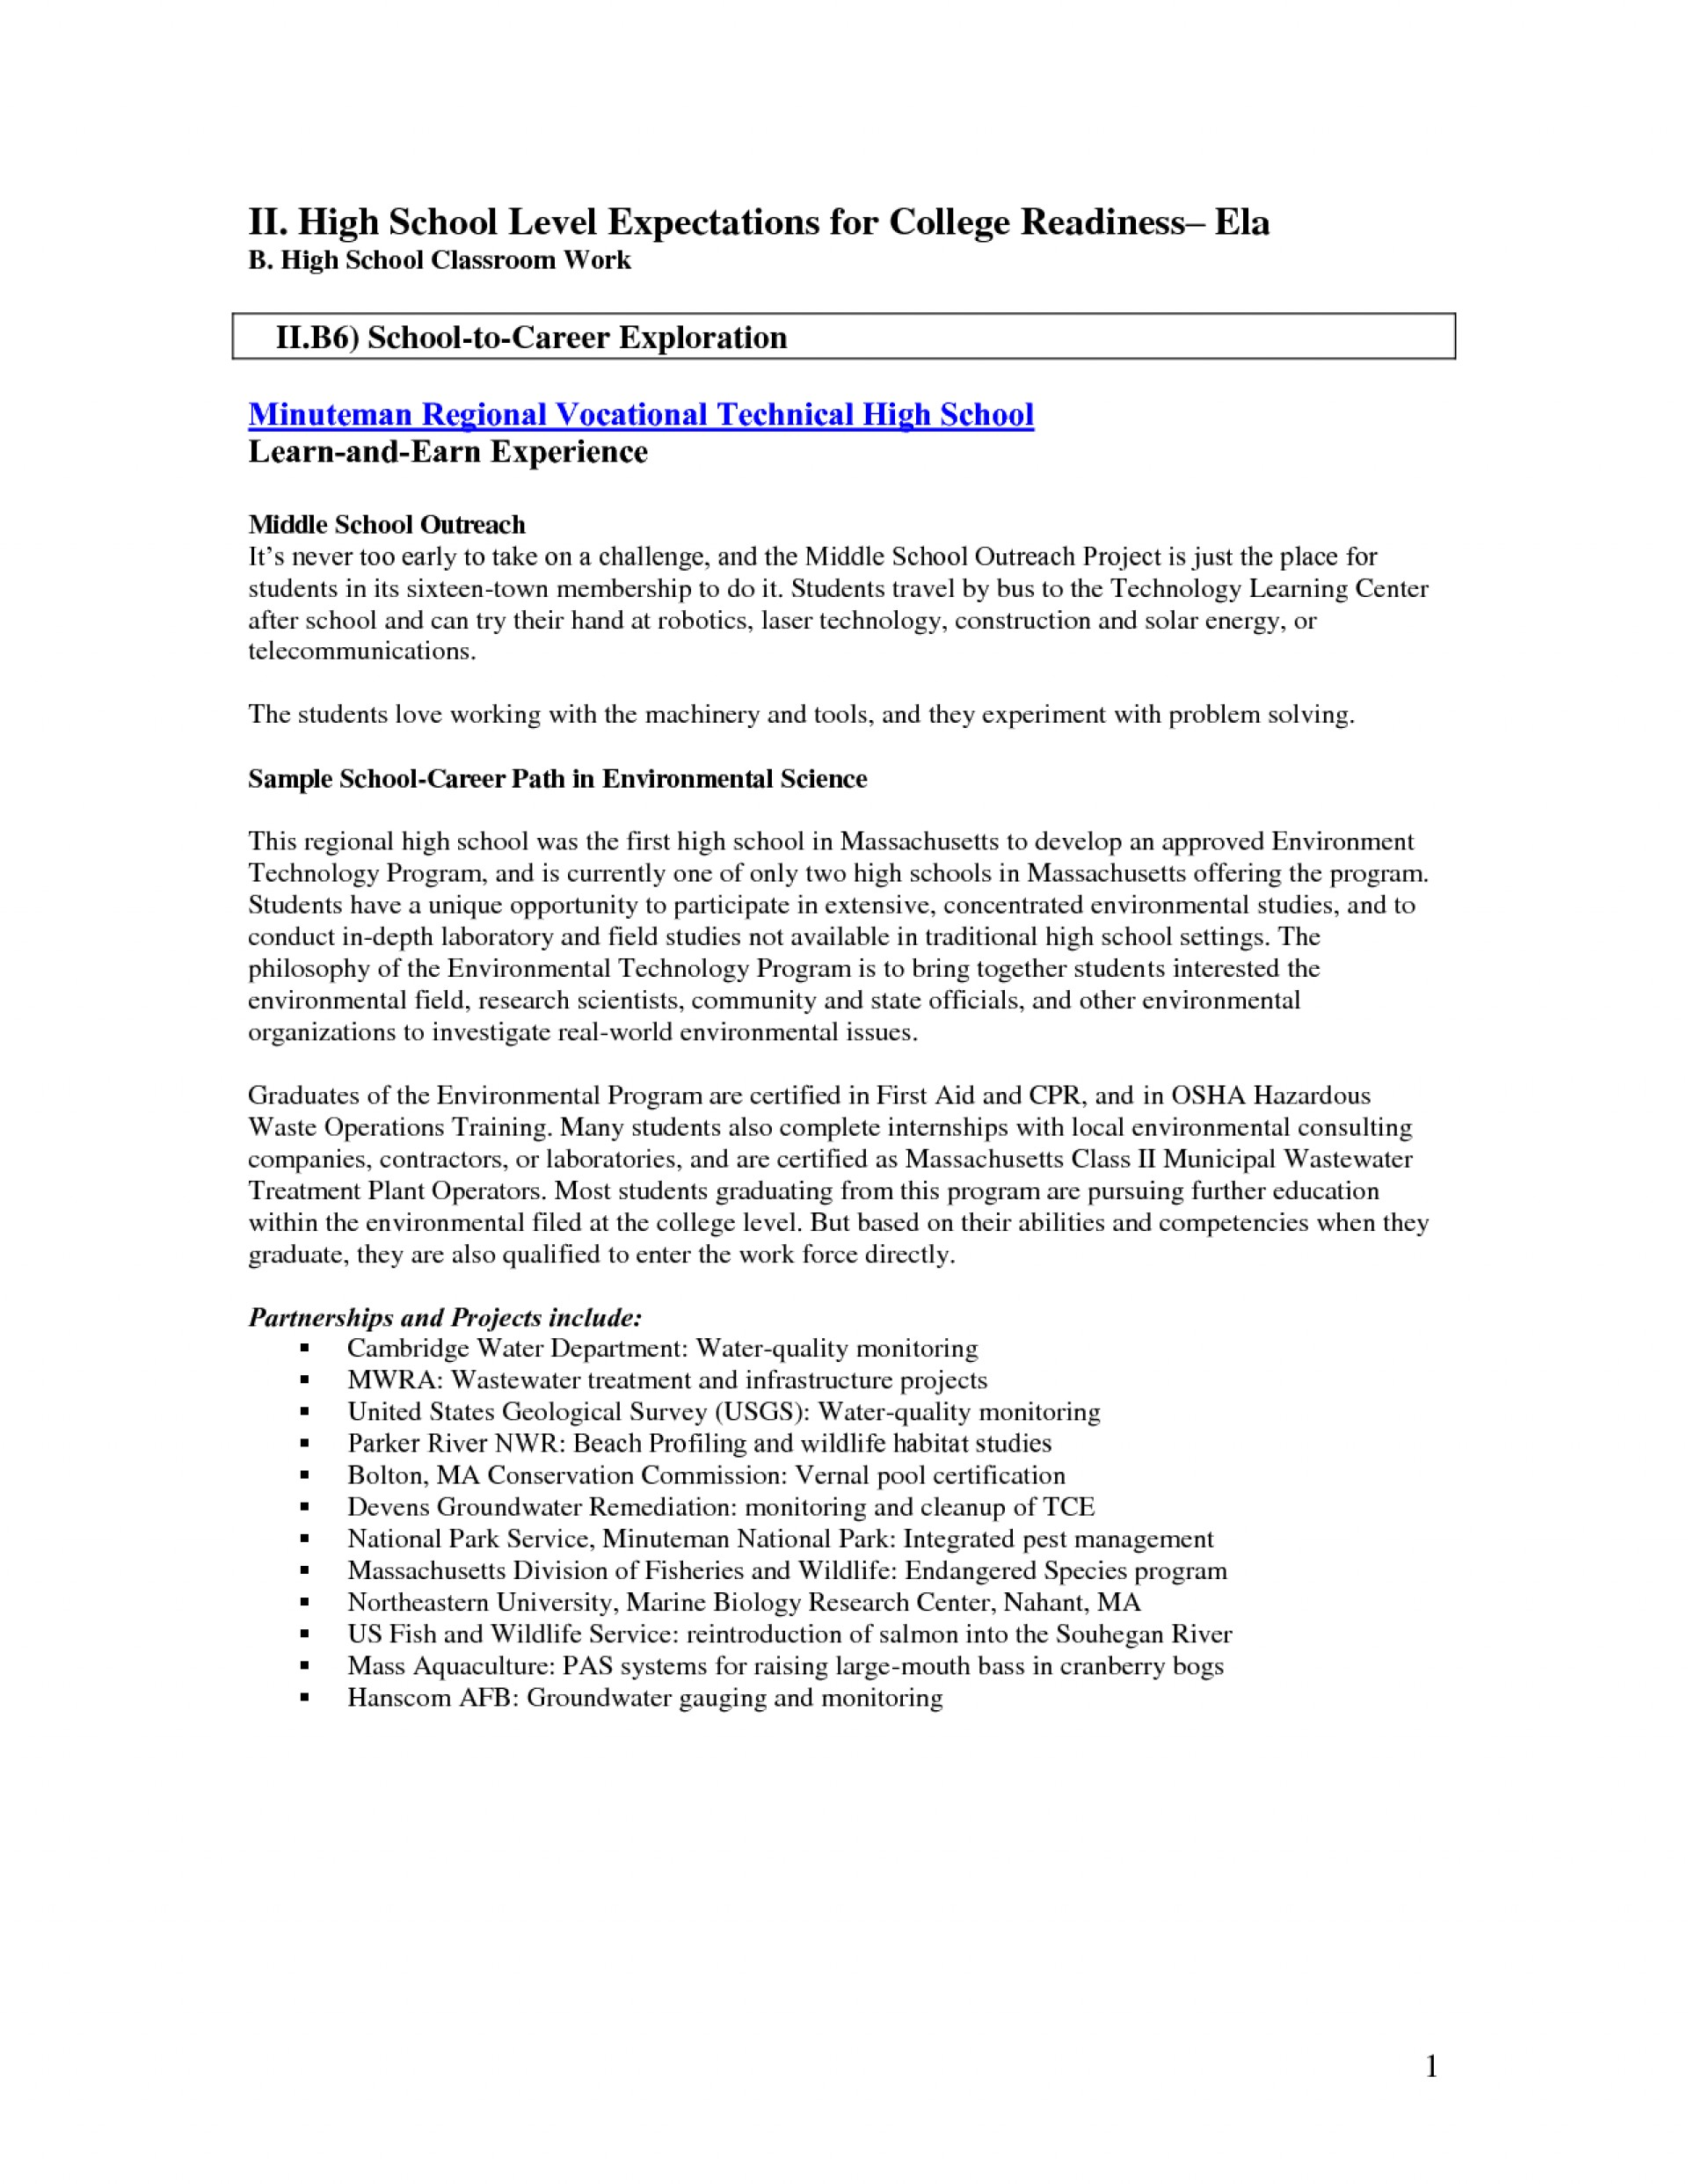 009 Middle School Research Paper Outline Template 435477 Unusual Ideas Topics Topic 1920